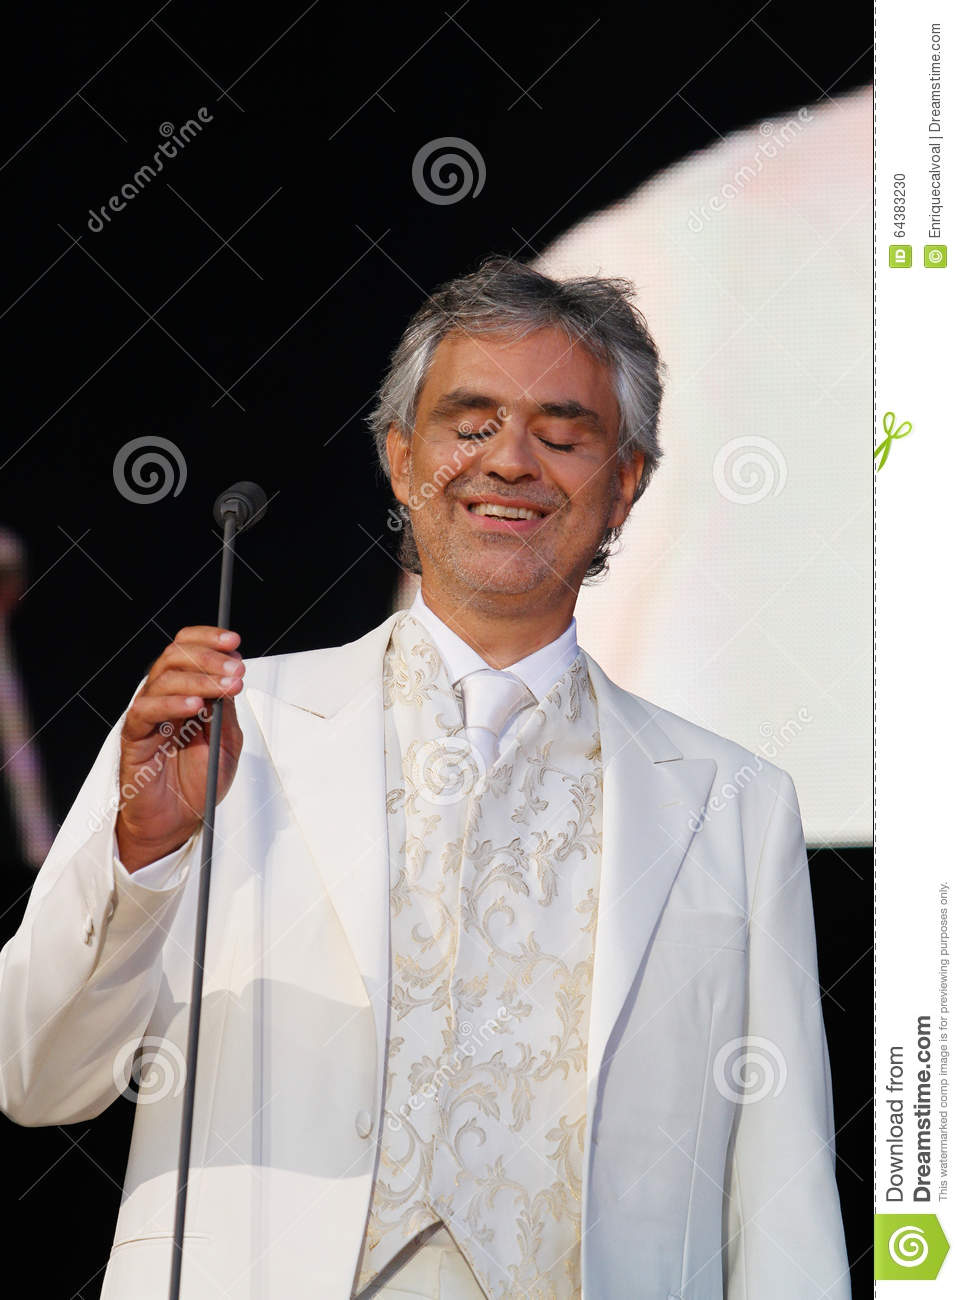 andrea bocelli - the music of the night download